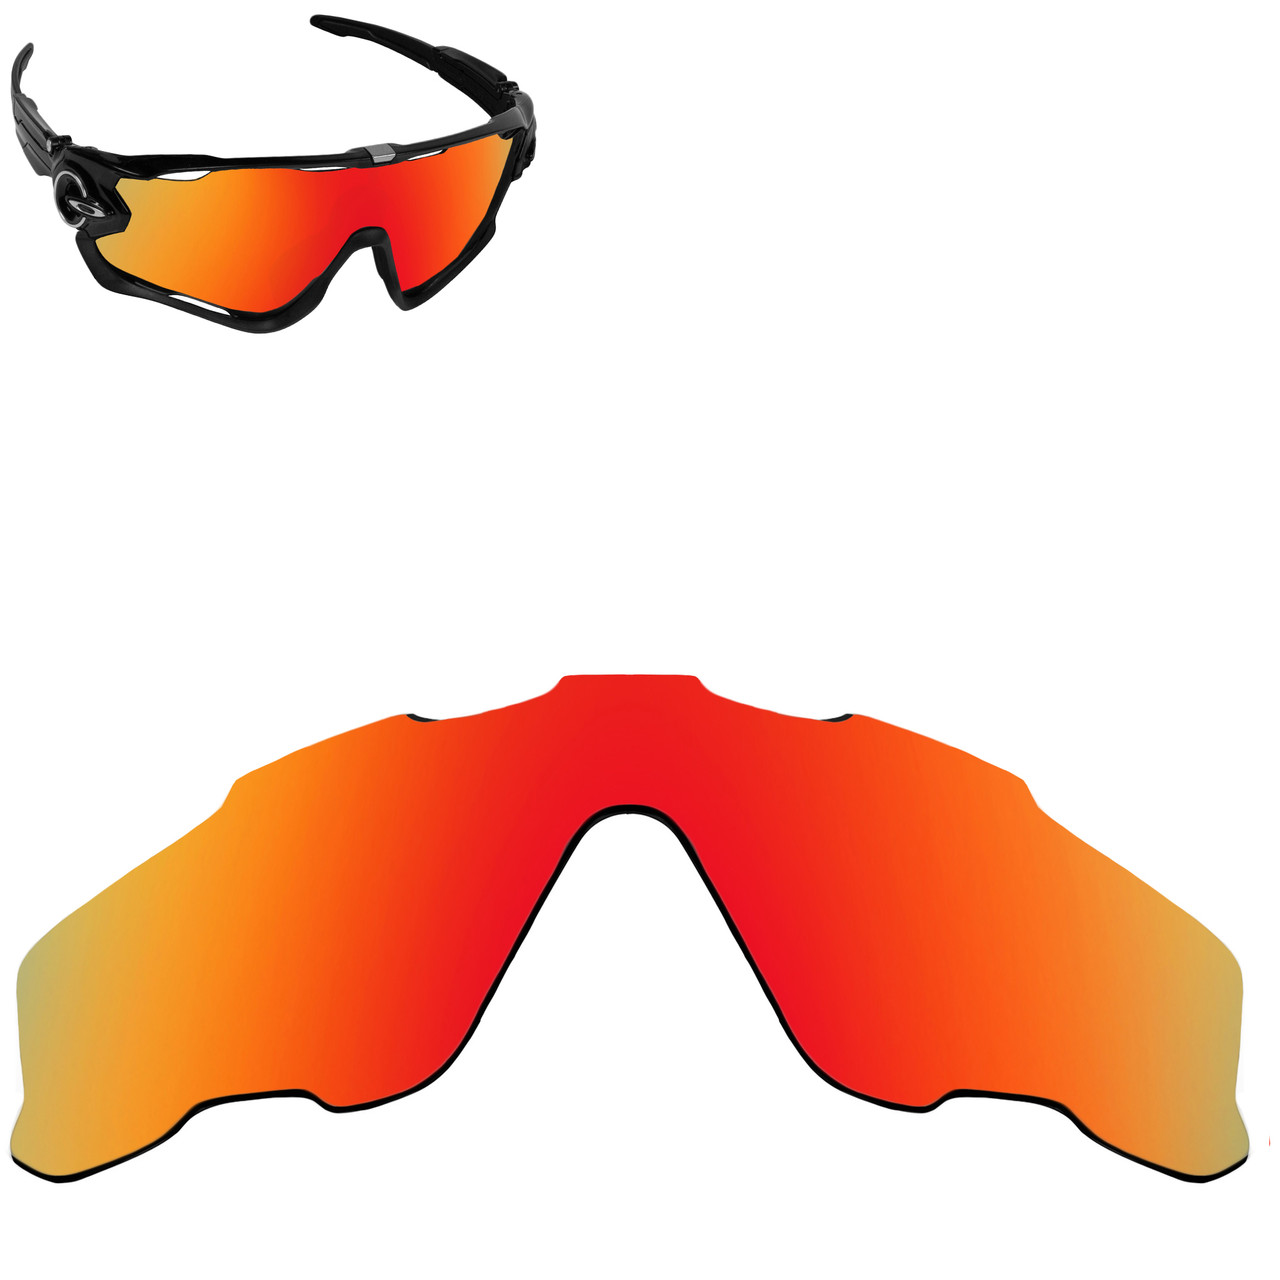 aba5e80769 Fits Oakley Jawbreaker - Seek Optics